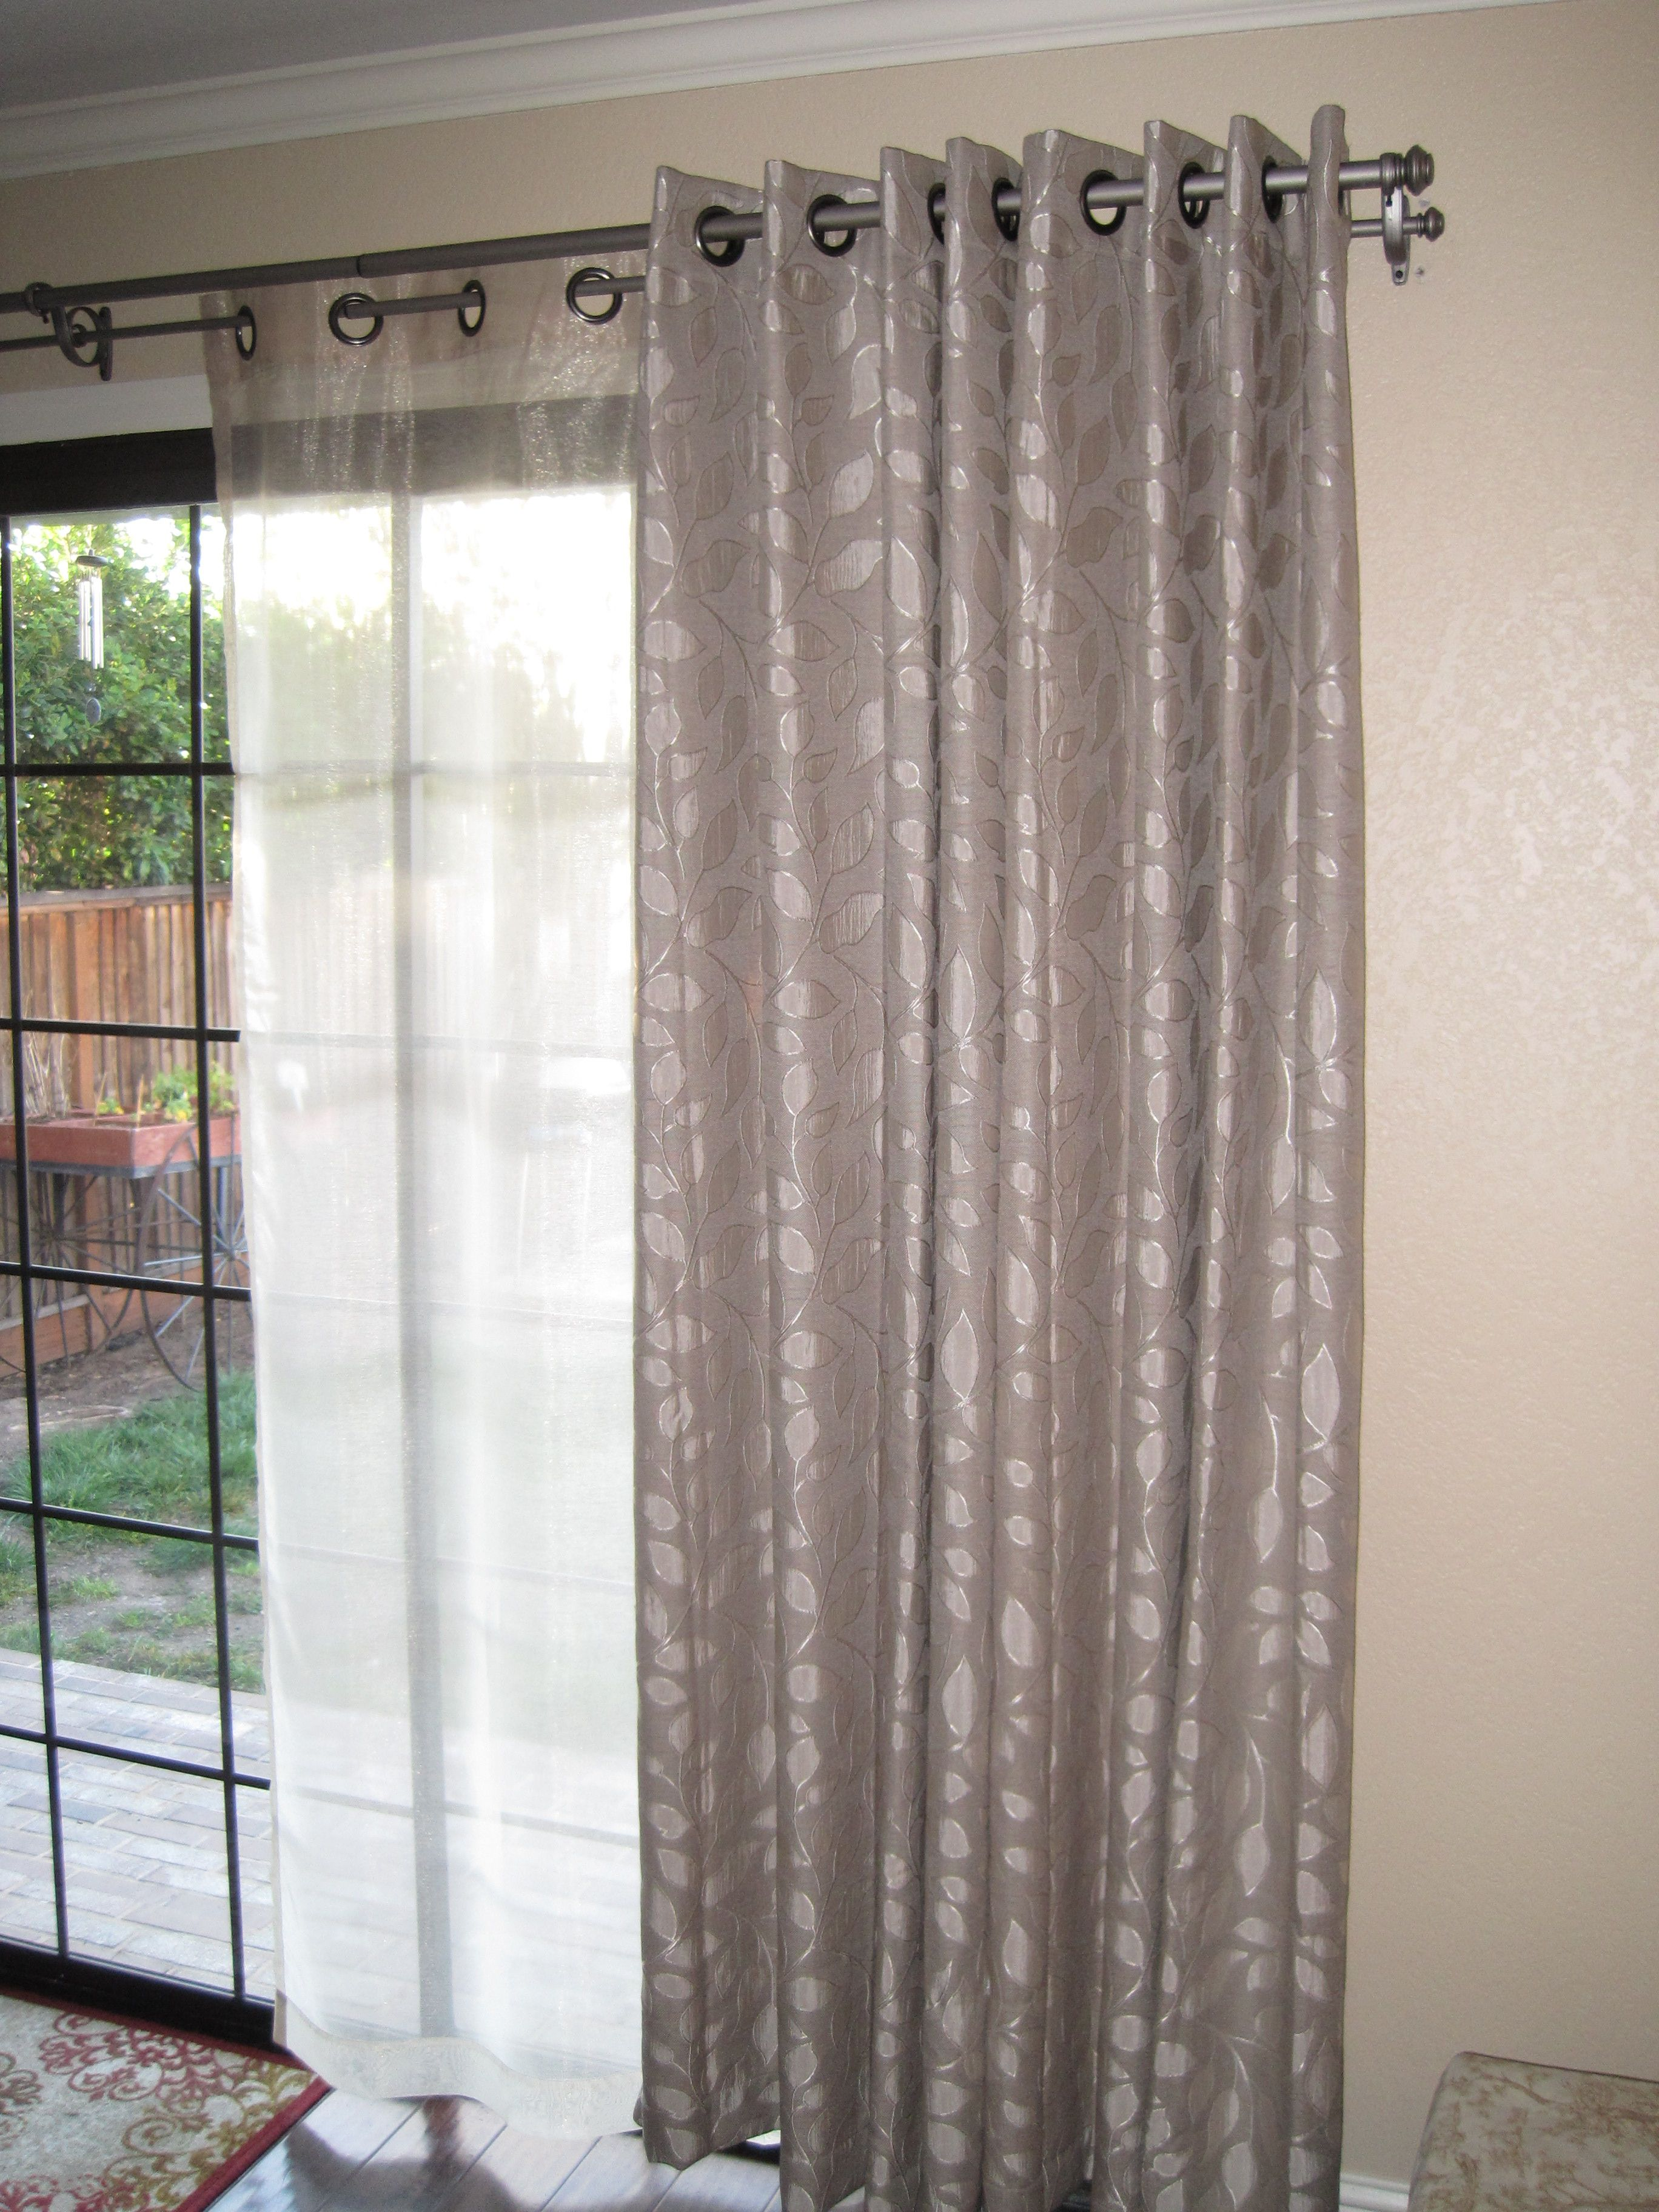 Double Curtain By Cindy Crawford Sold In Jcp Patio Door